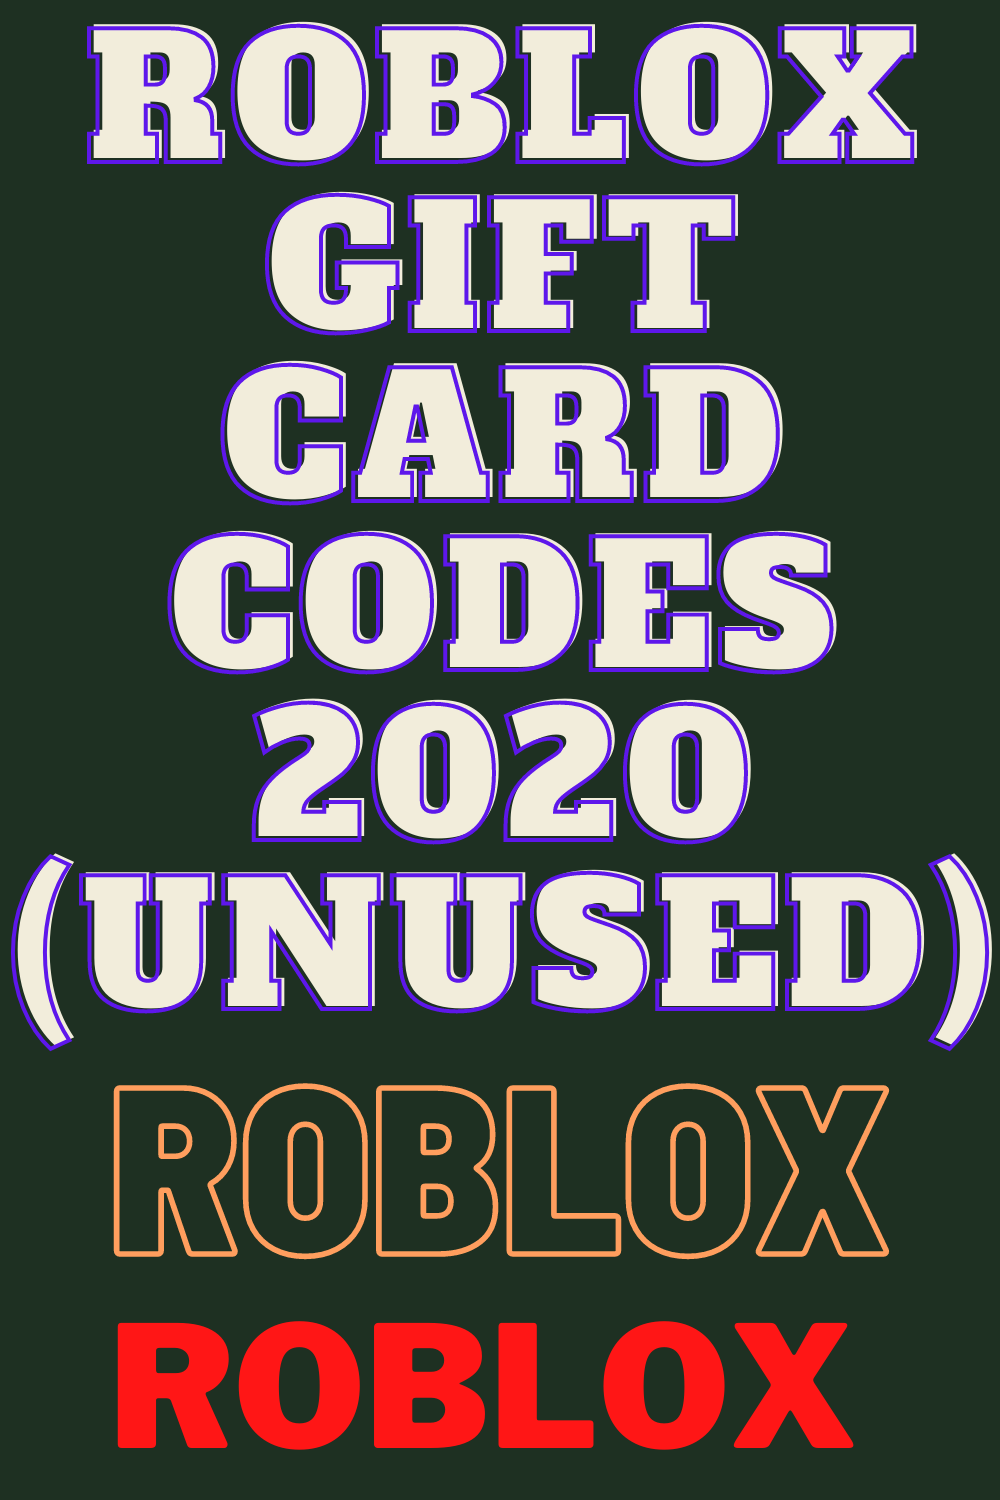 Roblox Gift Card Codes 2020 Unused In 2020 Roblox Gifts Roblox Netflix Gift Card Codes